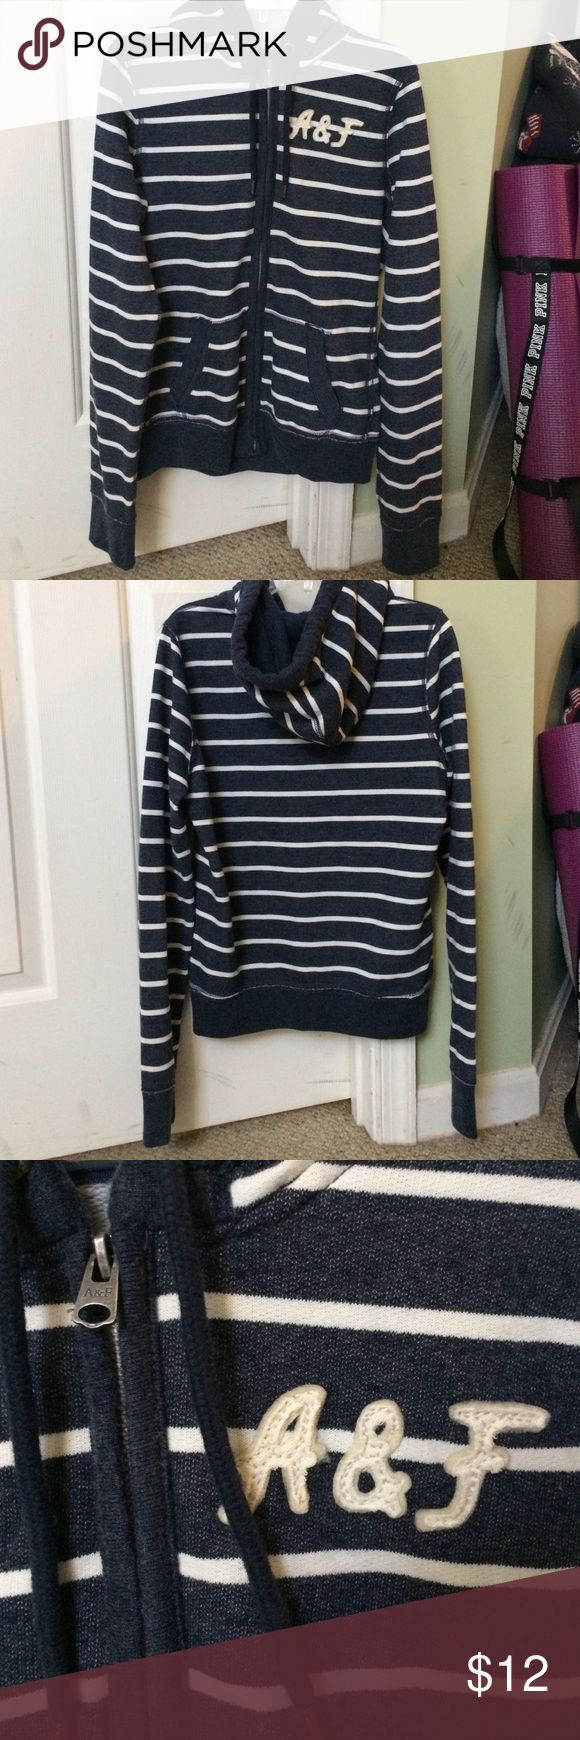 Abercrombie and Fitch Zip Hoodie Blue and white stripped zip up hoodie. Very soft and goes great with jeans or leggings. Abercrombie & Fitch Tops Sweatshirts & Hoodies